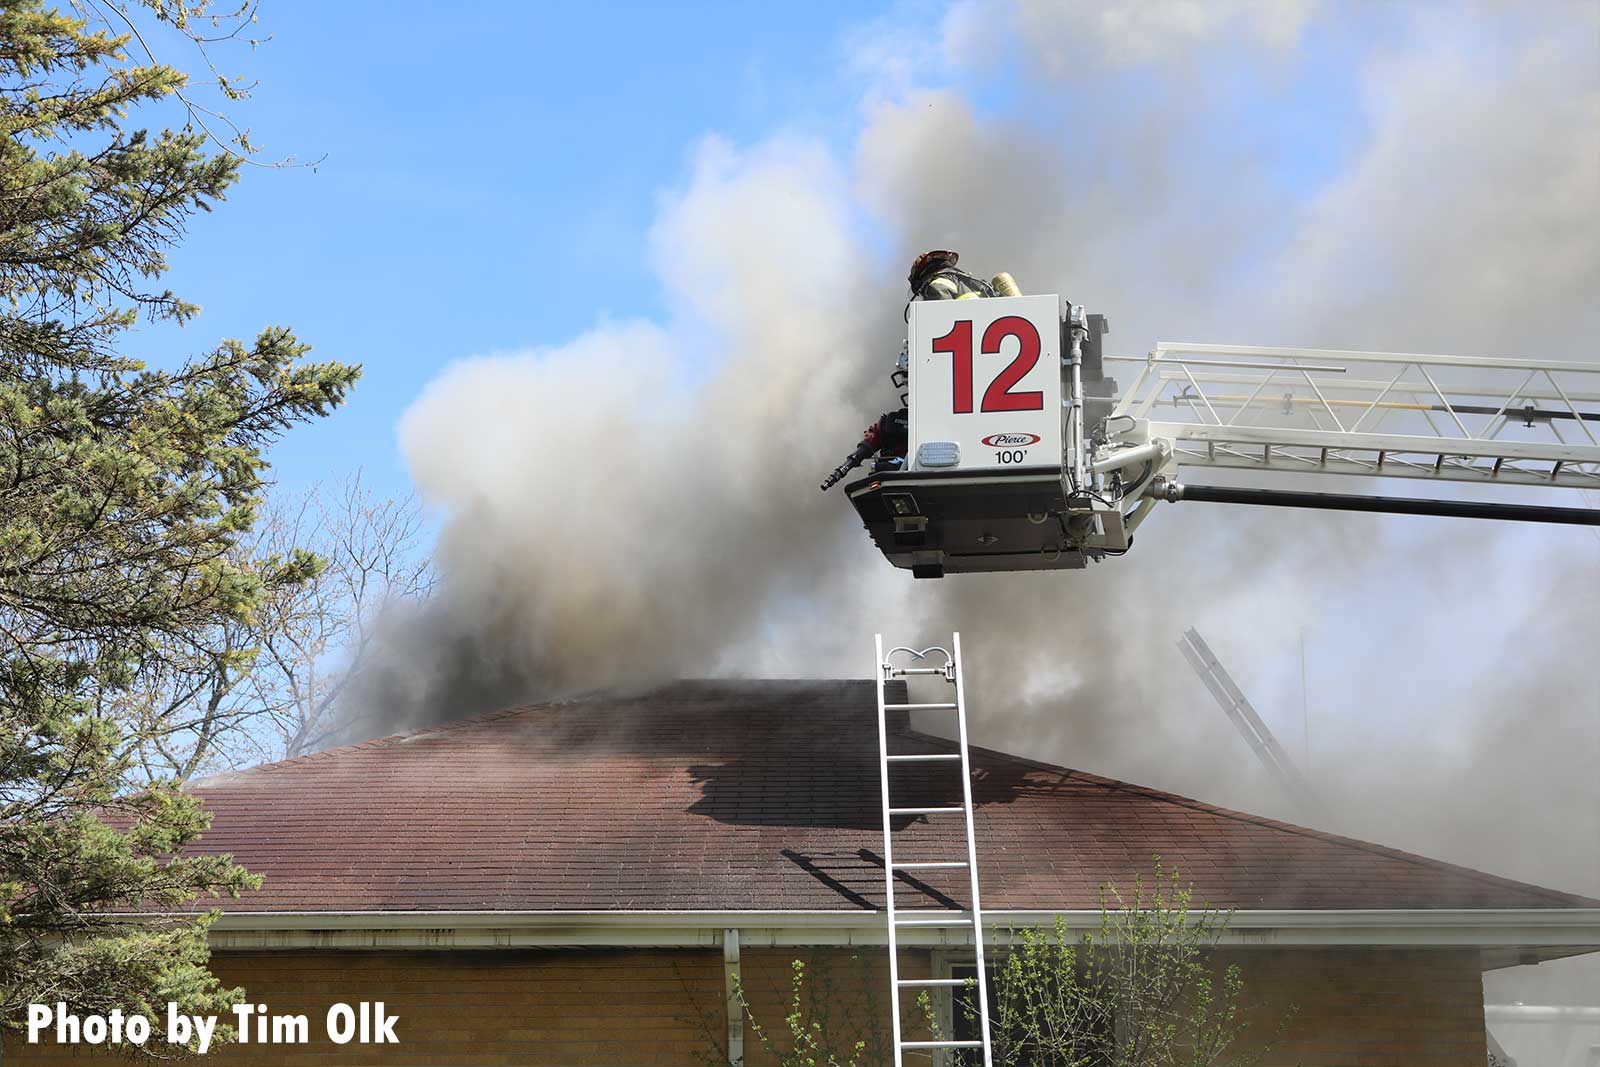 Firefighters in tower ladder bucket over house fire